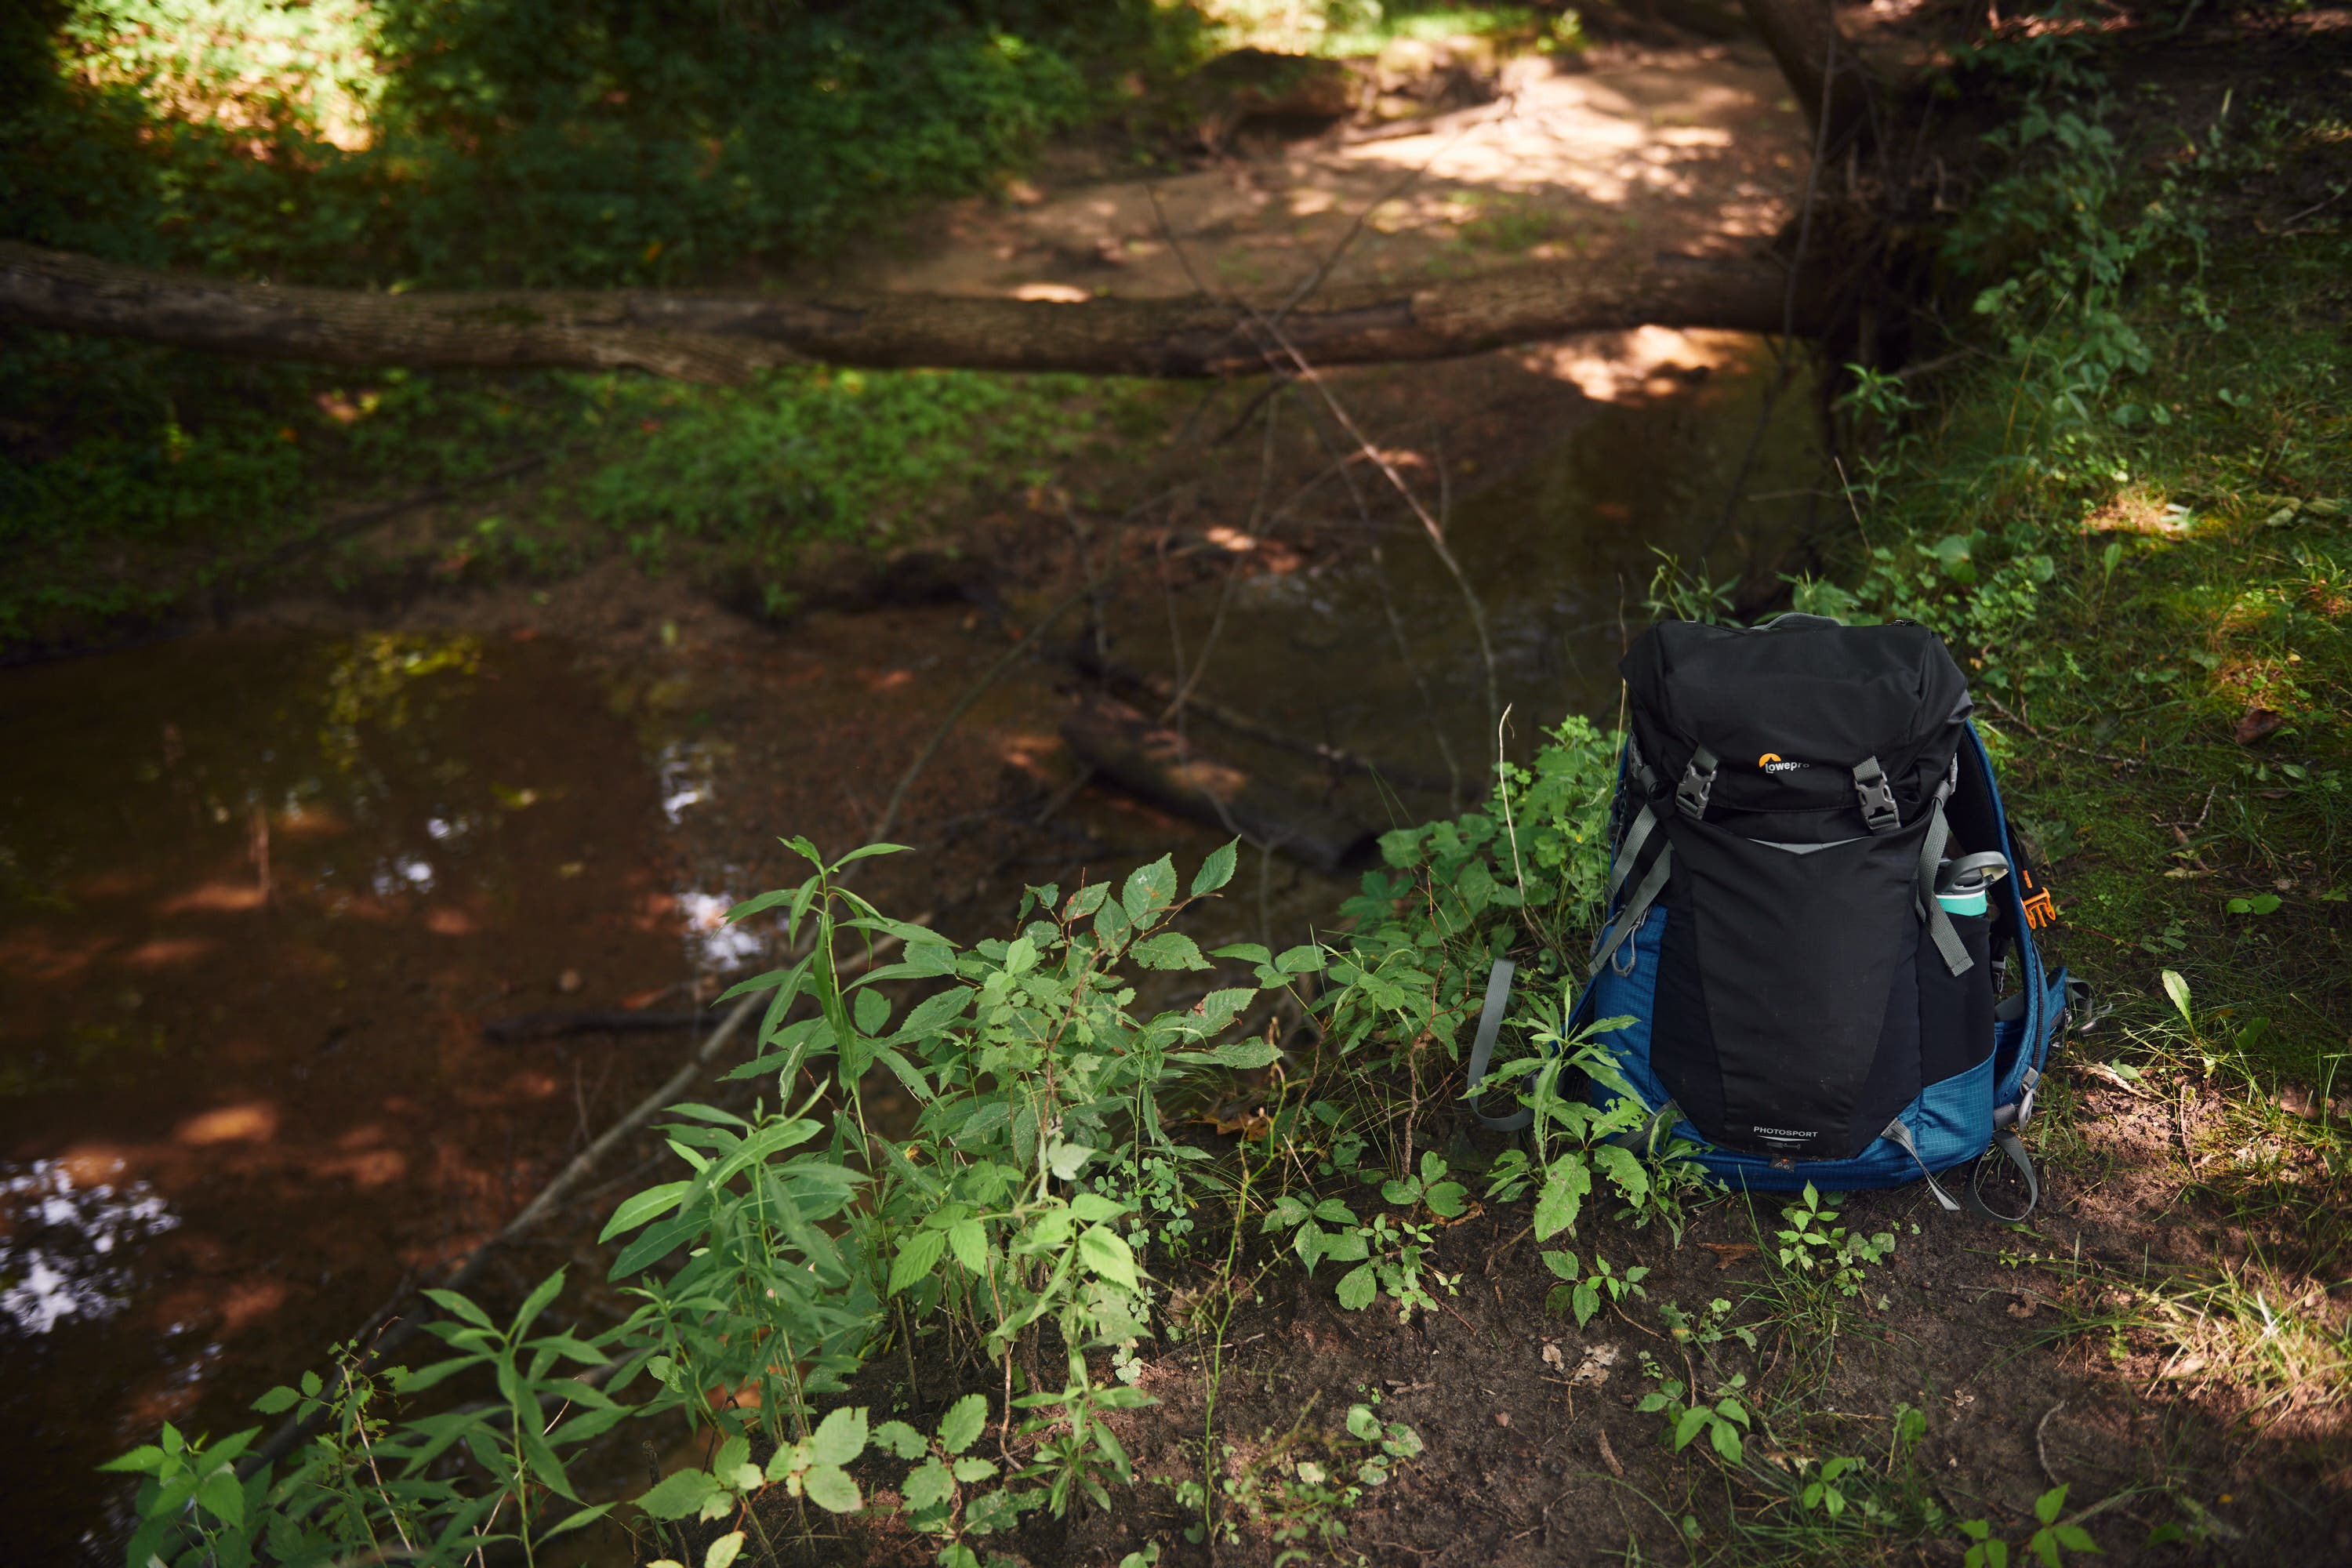 Unexpected, Practical and Green: Lowepro PhotoSport BP AW III Review